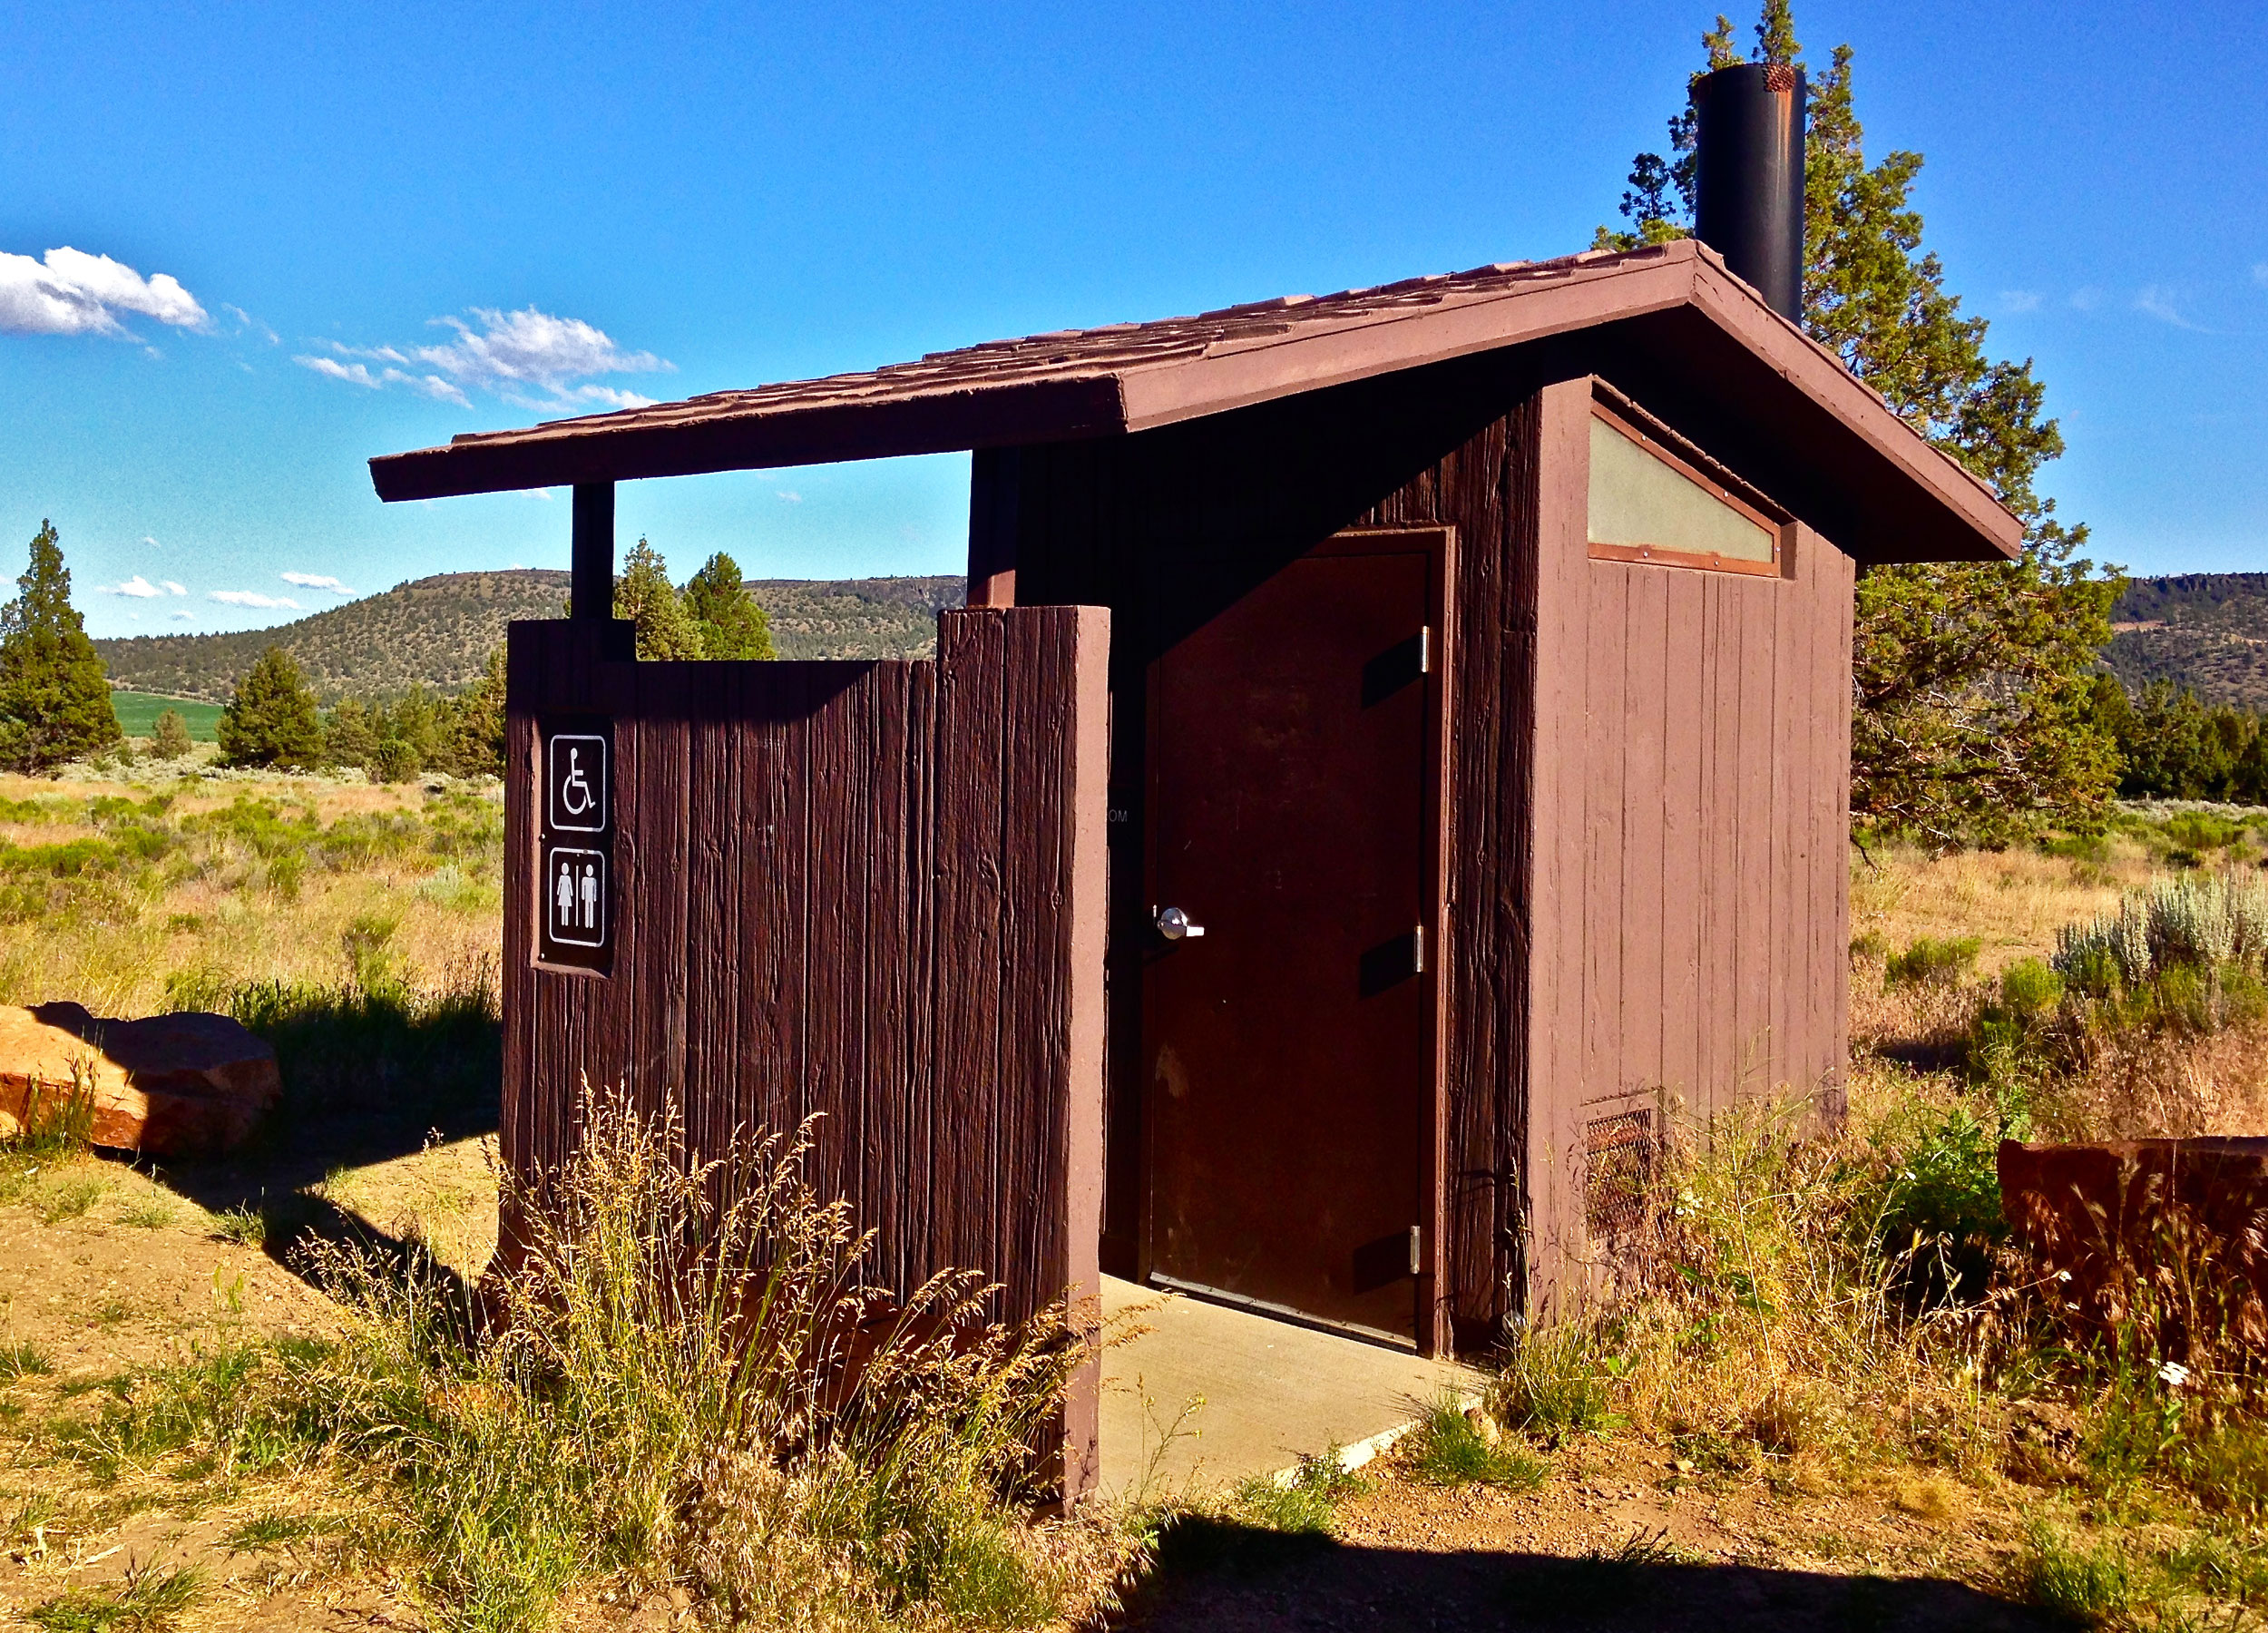 one of two pit toilets at Skull Hollow Campground